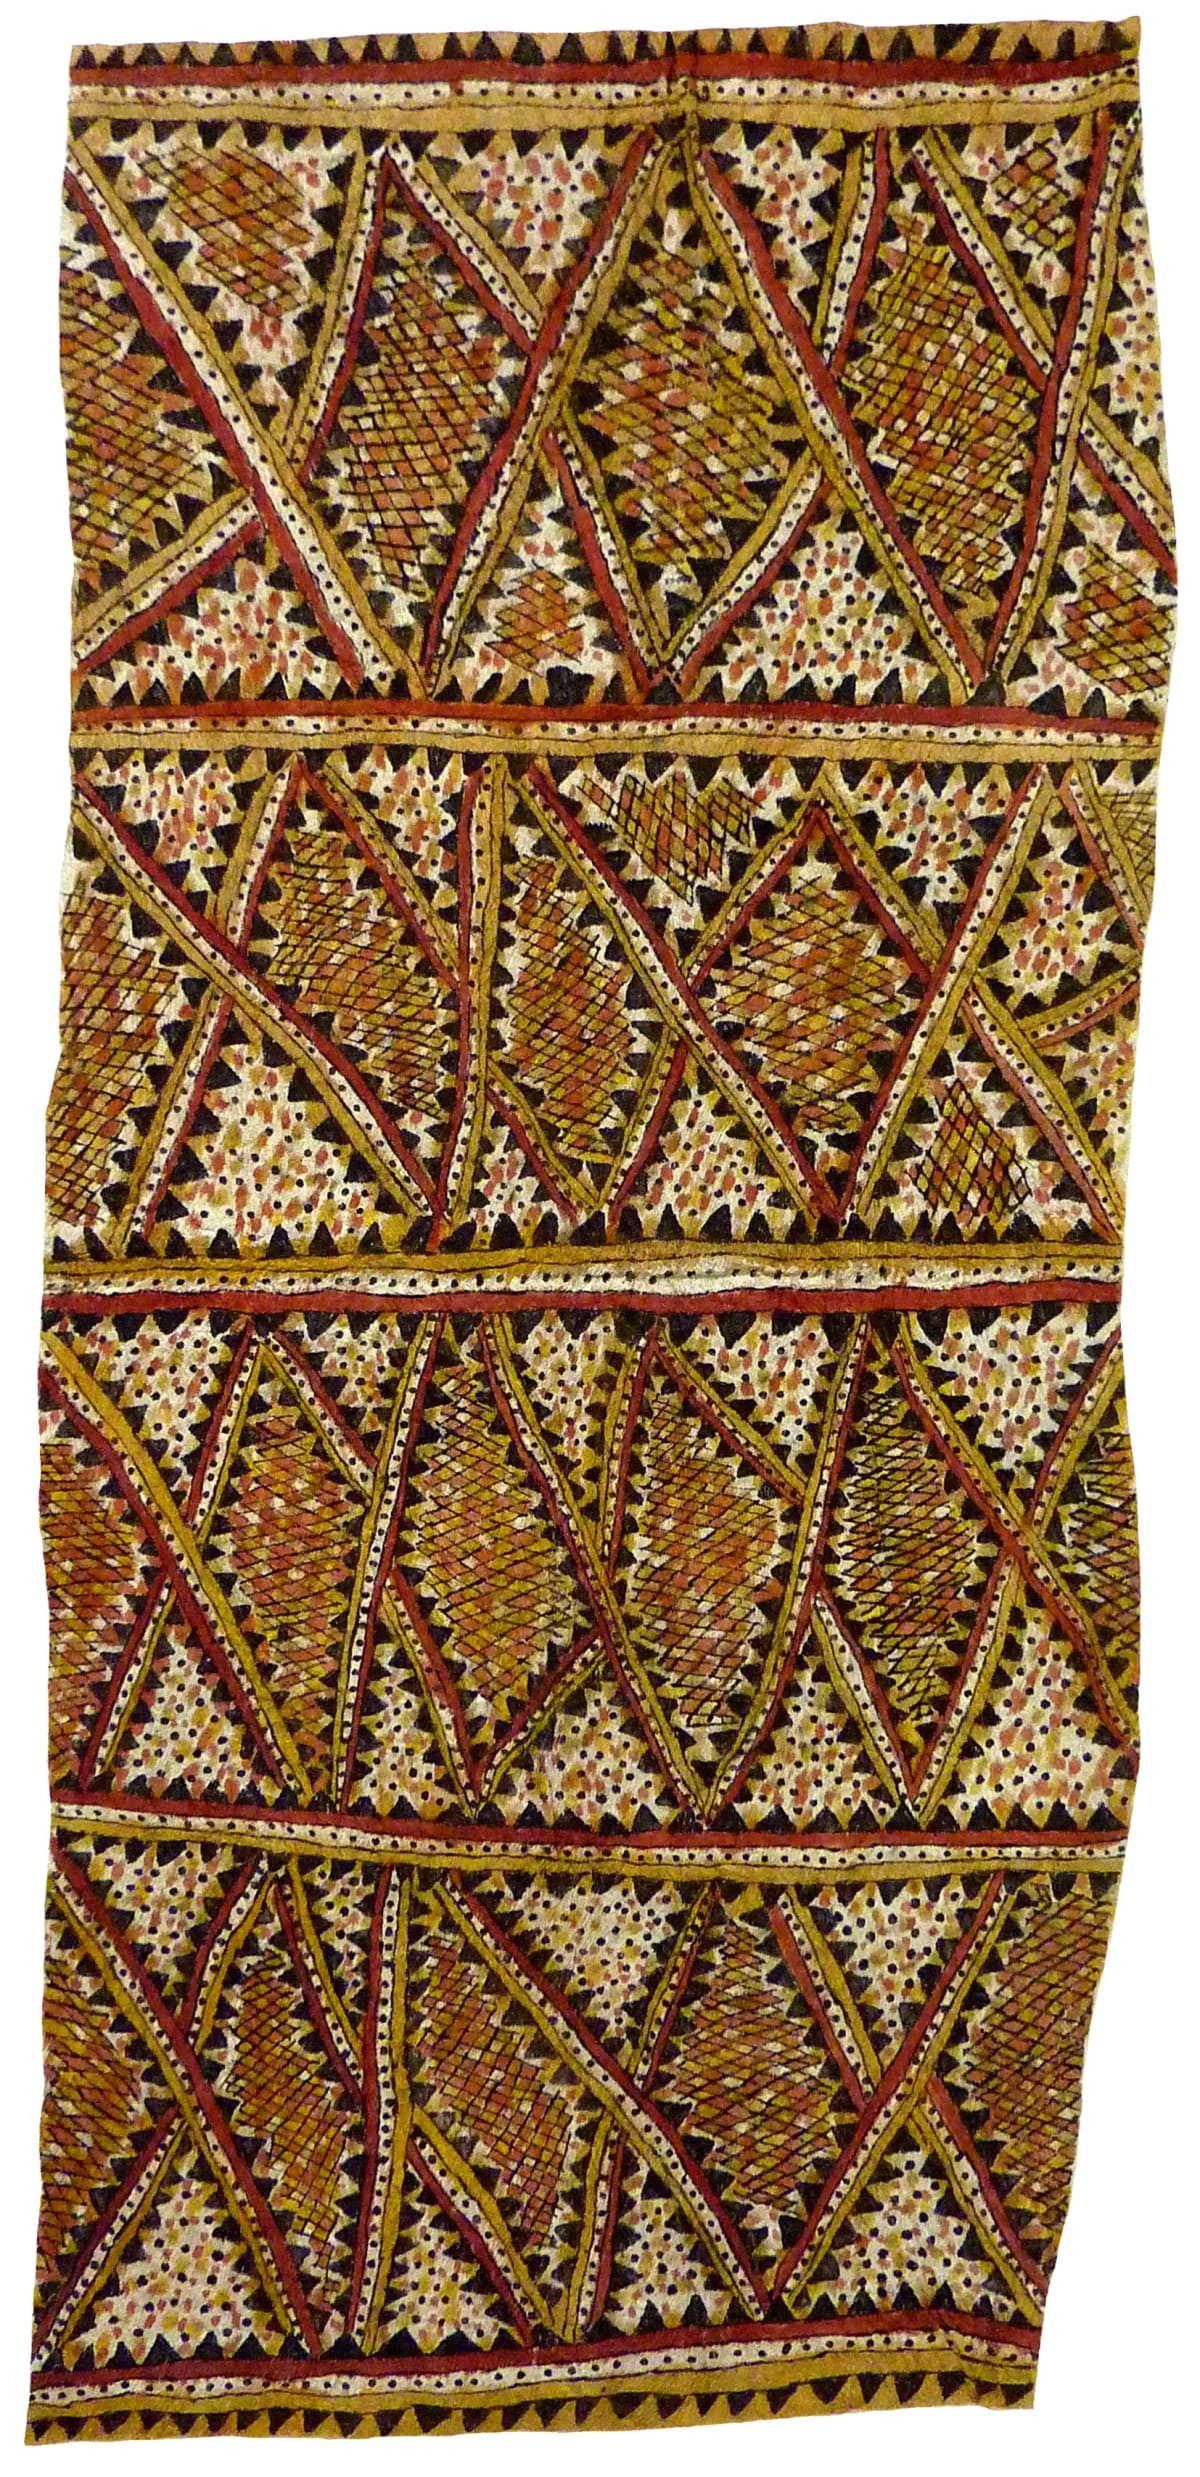 Botha Kimmikimmi (Hirokiki) Dohoru'e natural pigments on nioge (barkcloth) 113 x 52 cm